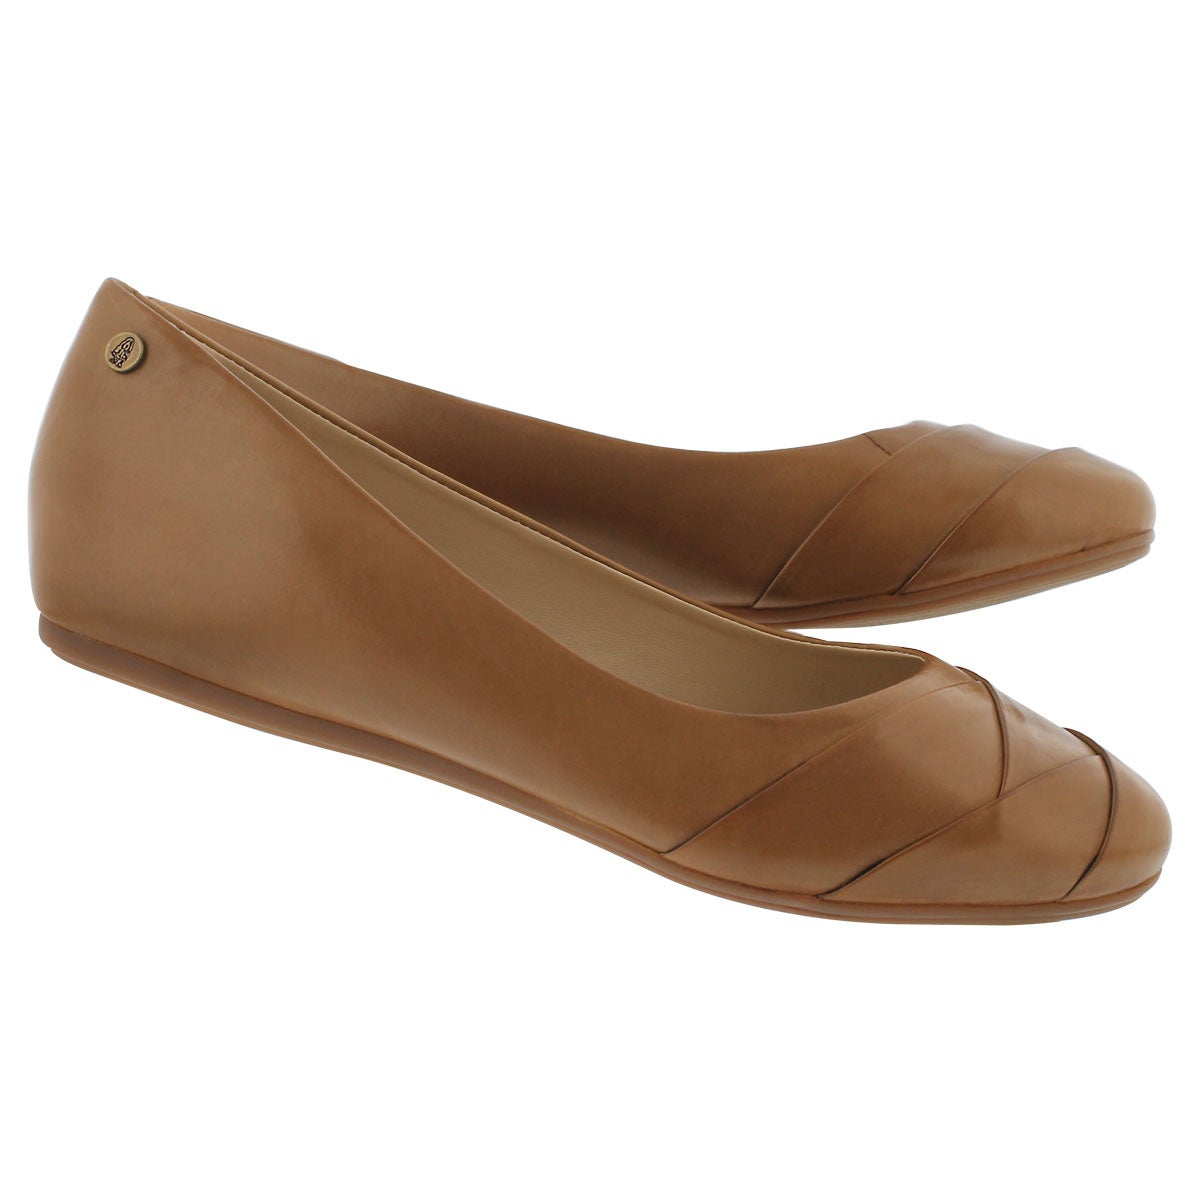 Lds Heidi Heather cognac leather flat